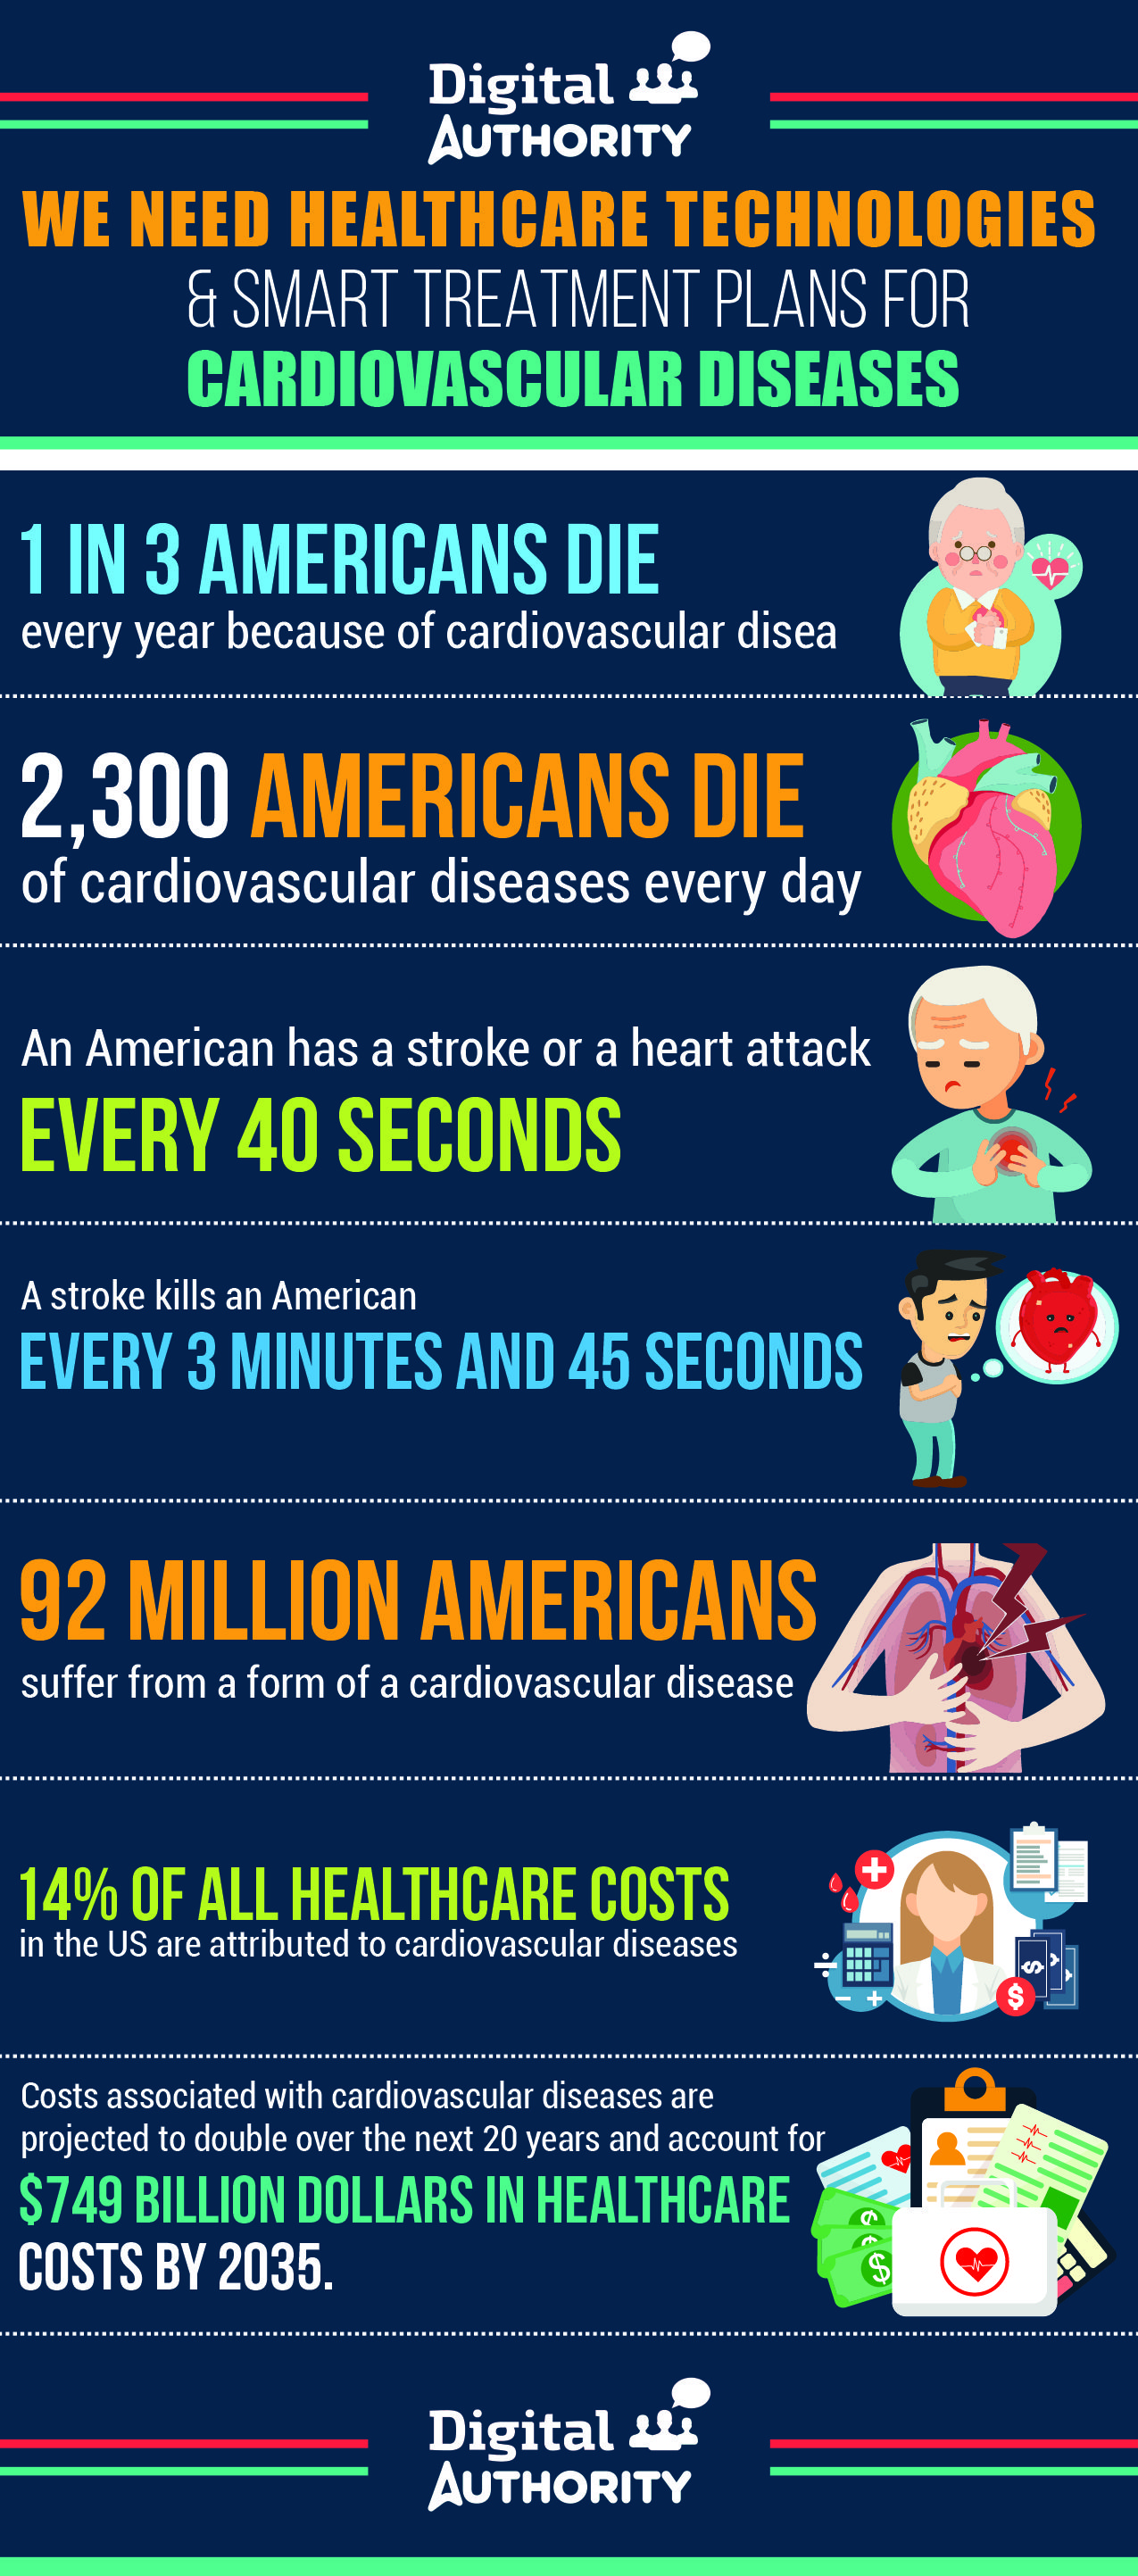 Infographic with healthcare statistics about cardiovascular diseases